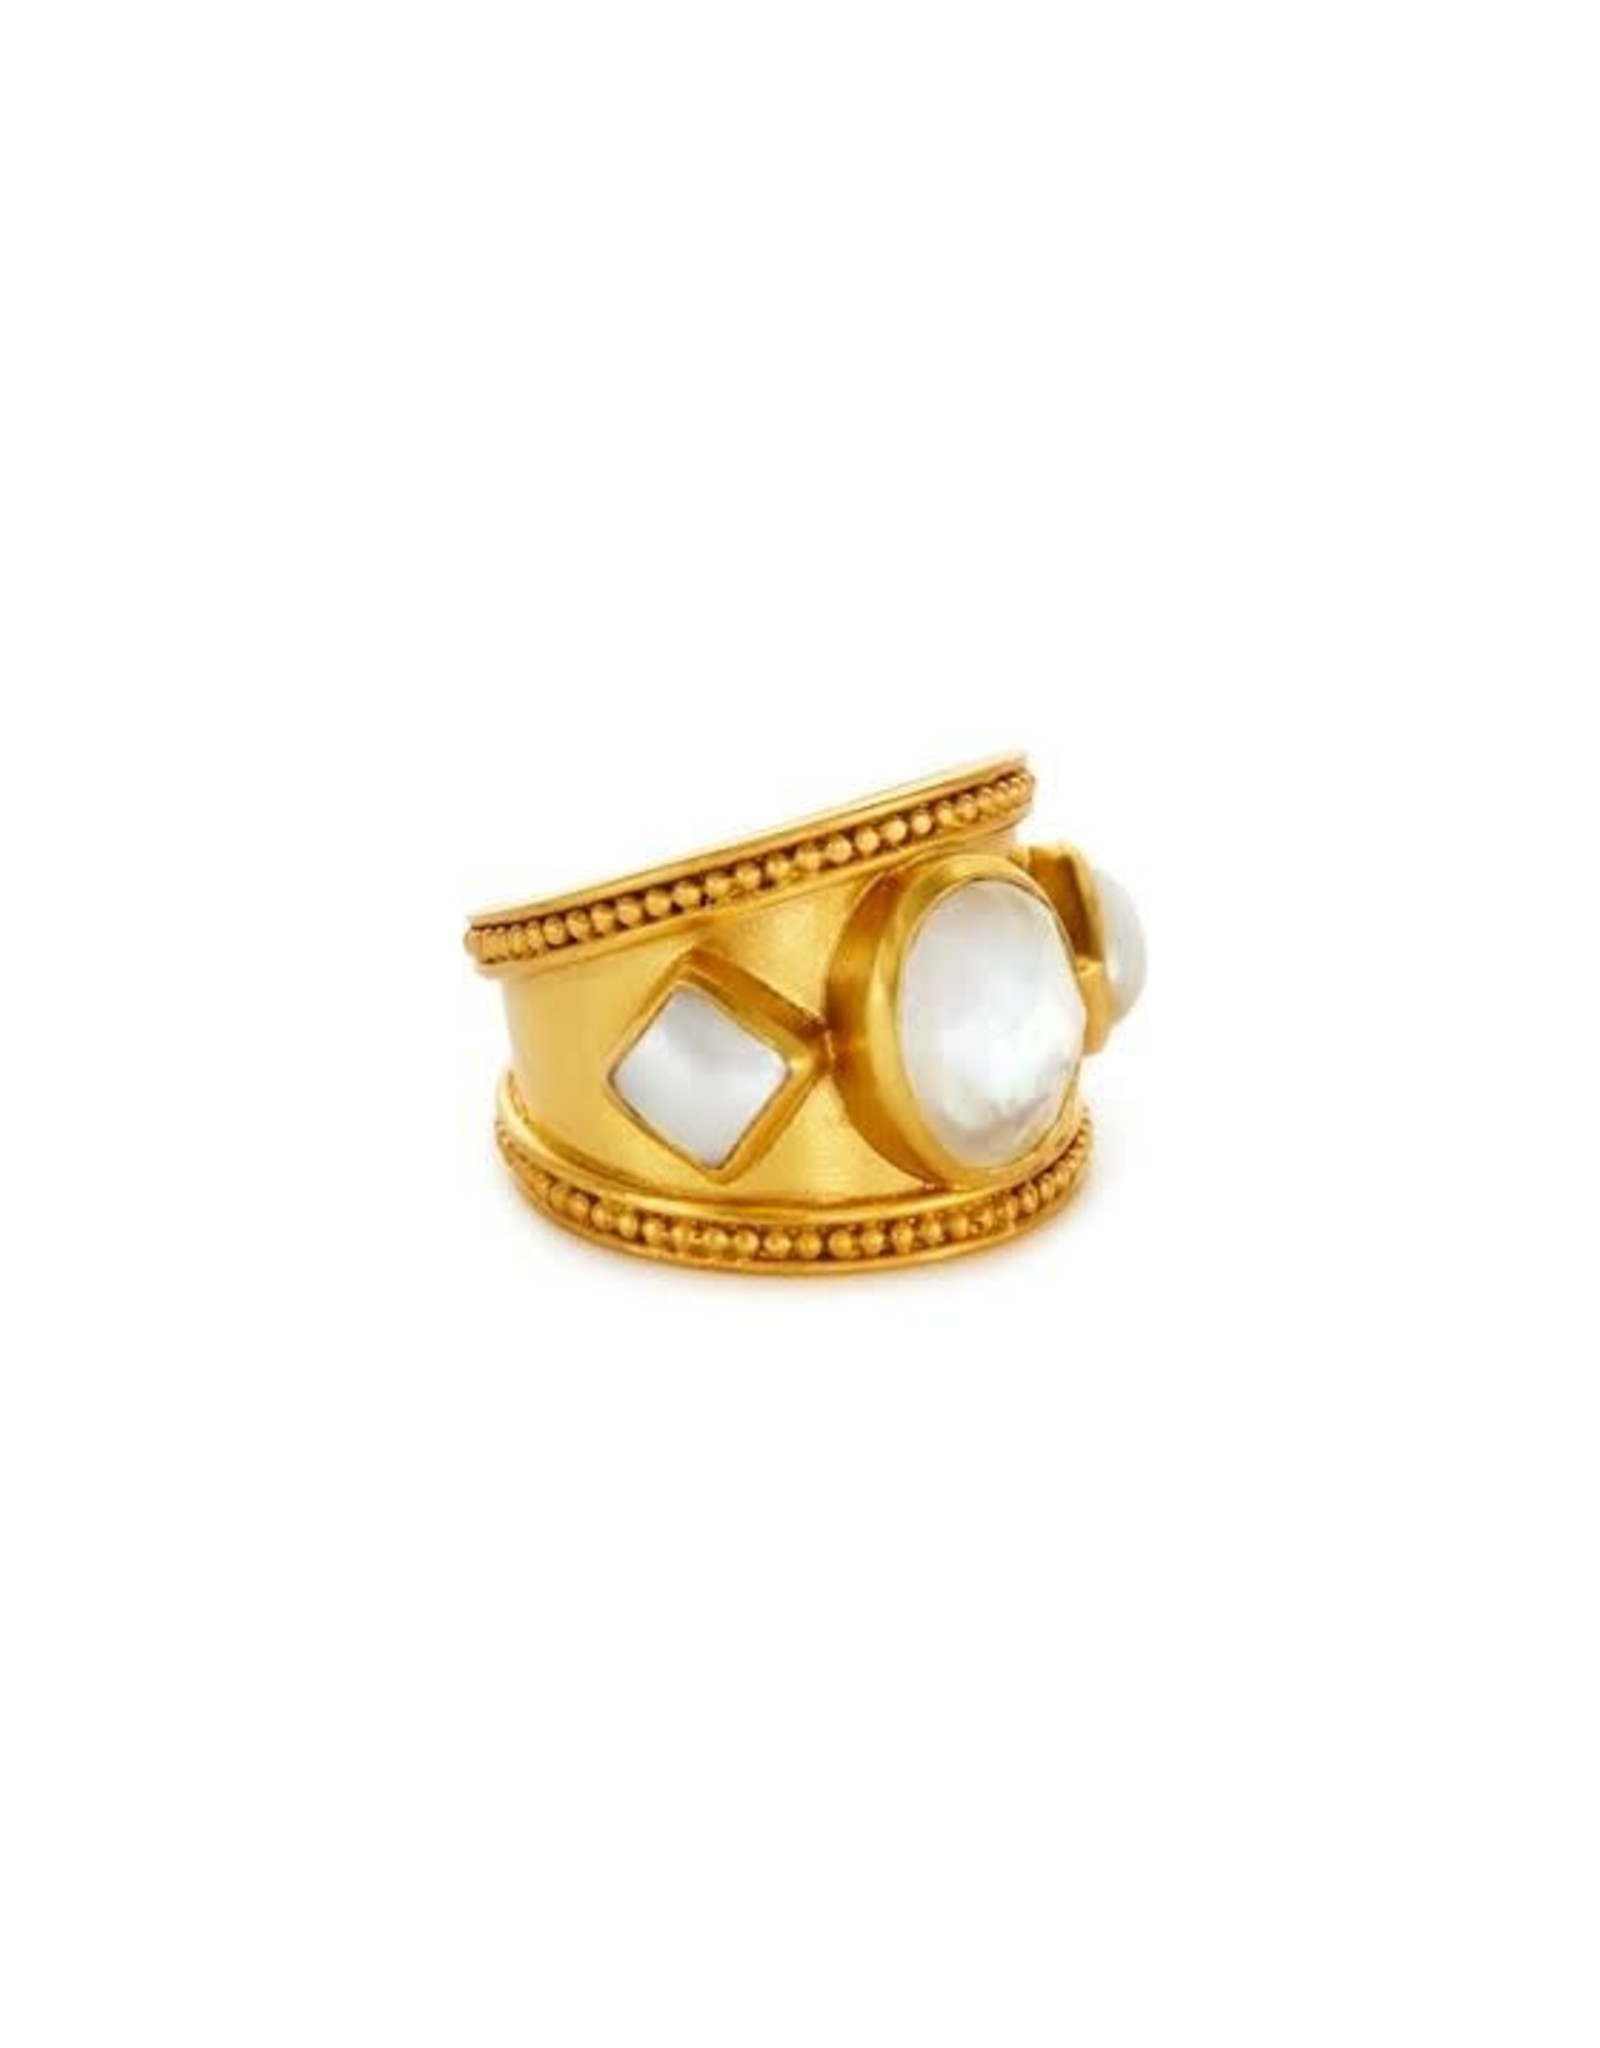 Julie Vos Loire Stone Ring Gold Iridescent Clear Crystal with Pearl Accents - 8/9